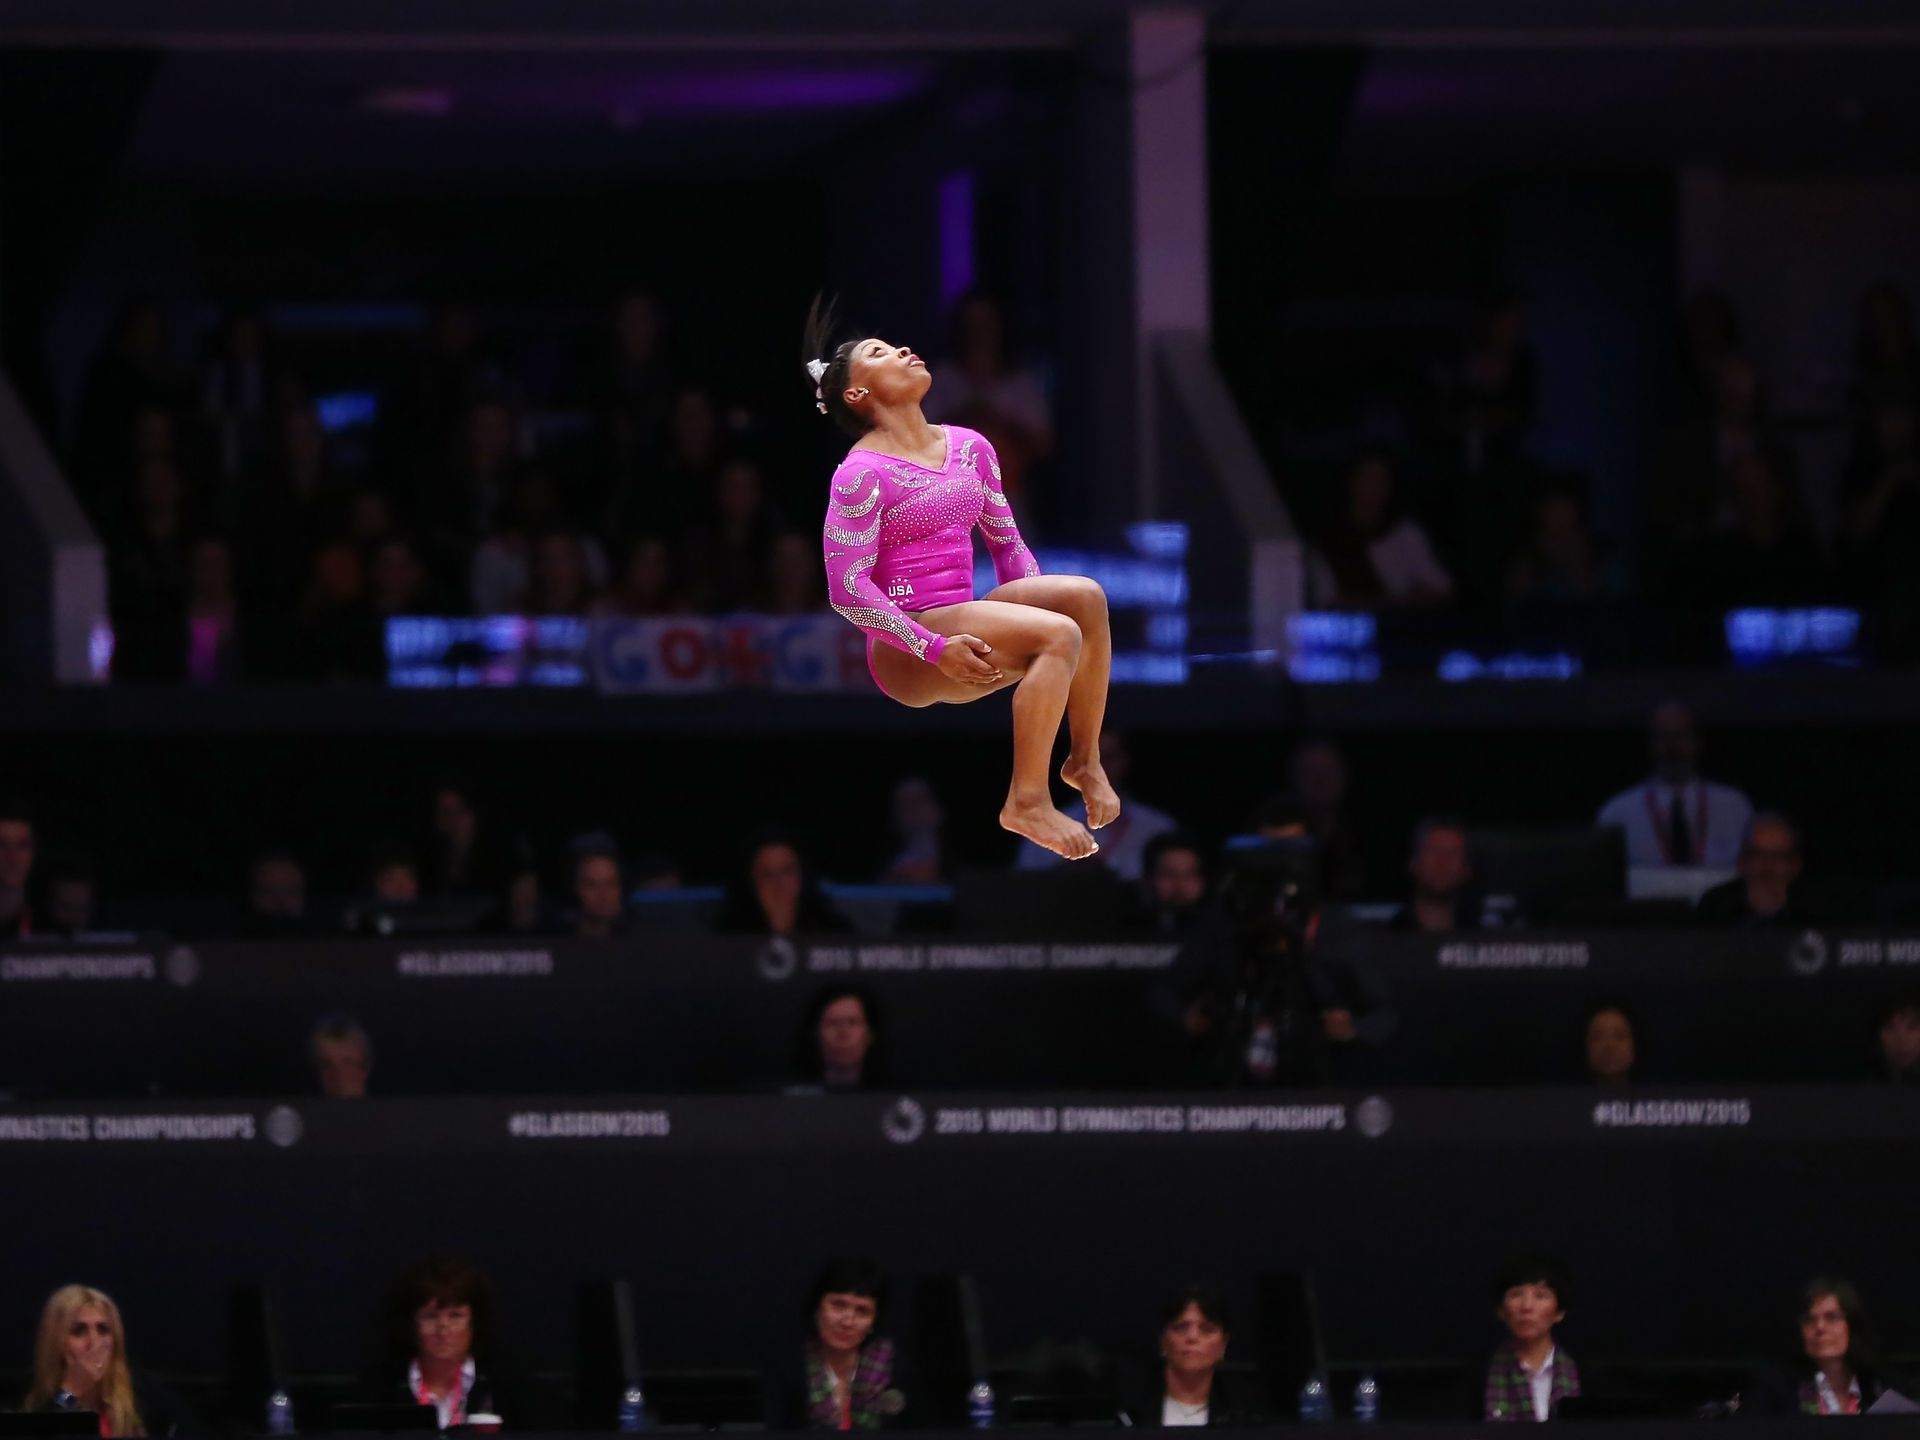 American Simone Biles performs her floor routine during qualifying